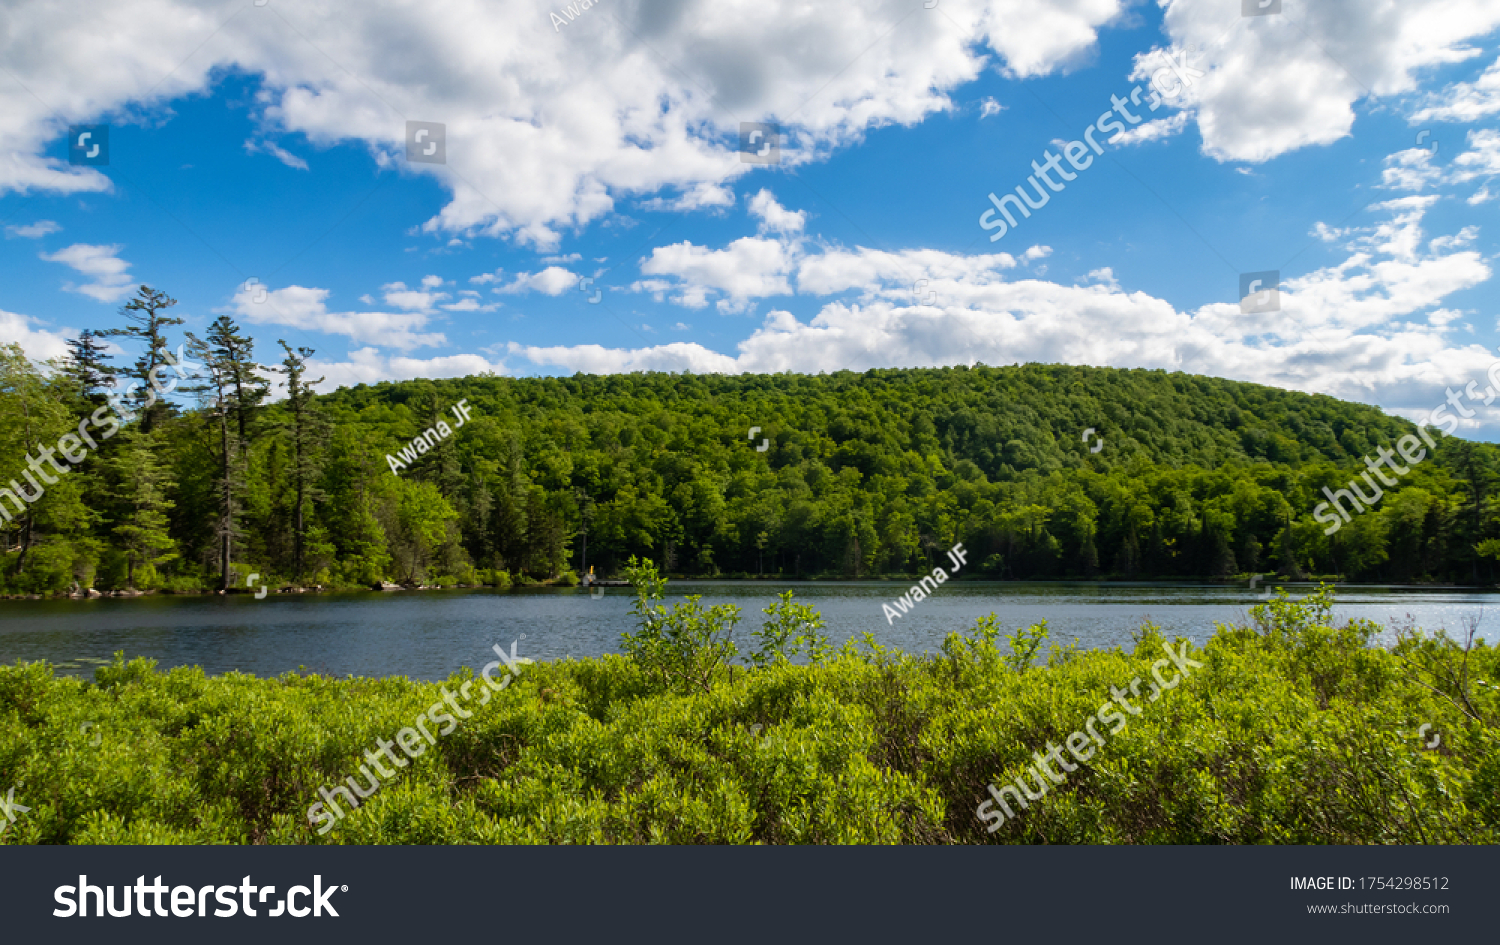 stock-photo-beautiful-view-of-a-canadian